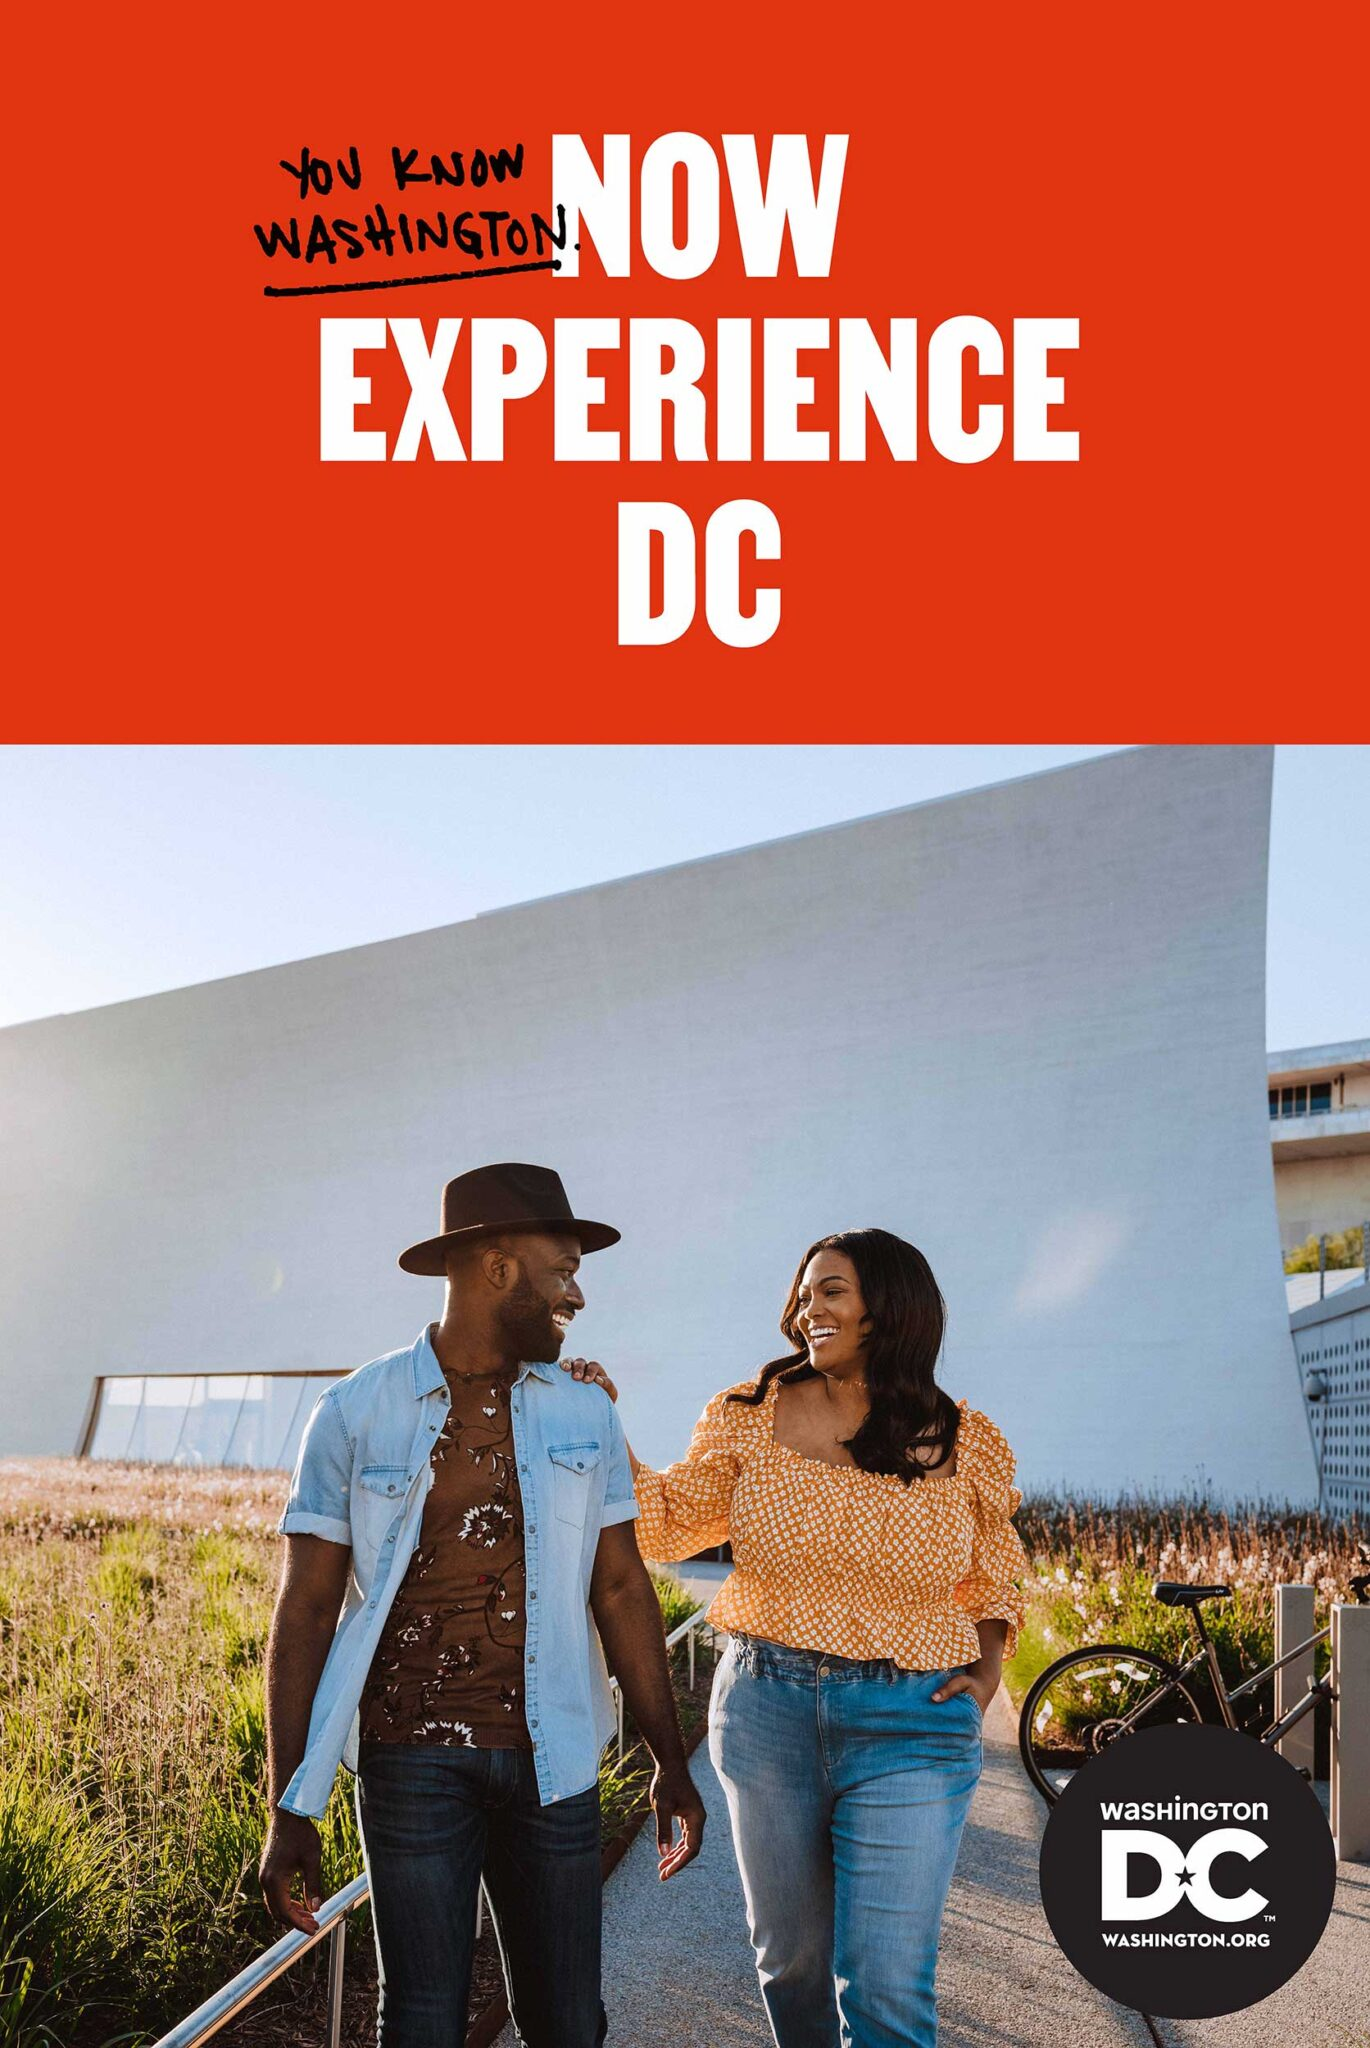 Experience-DC-Ad-Boards_Page_5